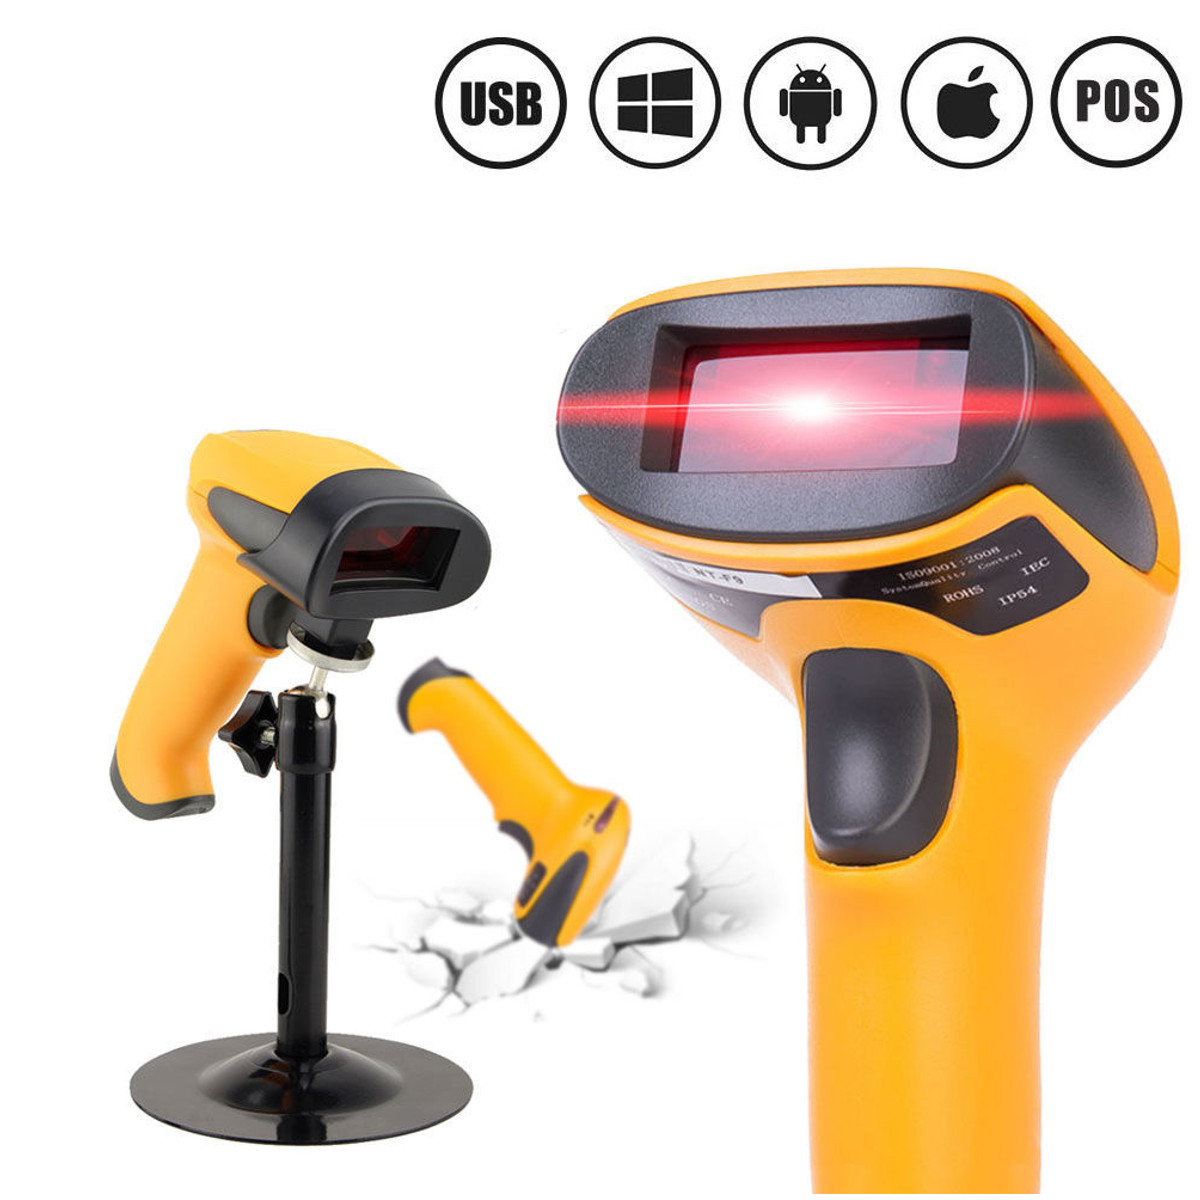 Portable USB Laser Barcode Scanner Automatic Bar Code Scan Reader With Stand Handheld POS For Business Supermarket handheld wireless usb data collector handheld barcode scanner reader laser bar code pos terminal for supermarket store warehouse